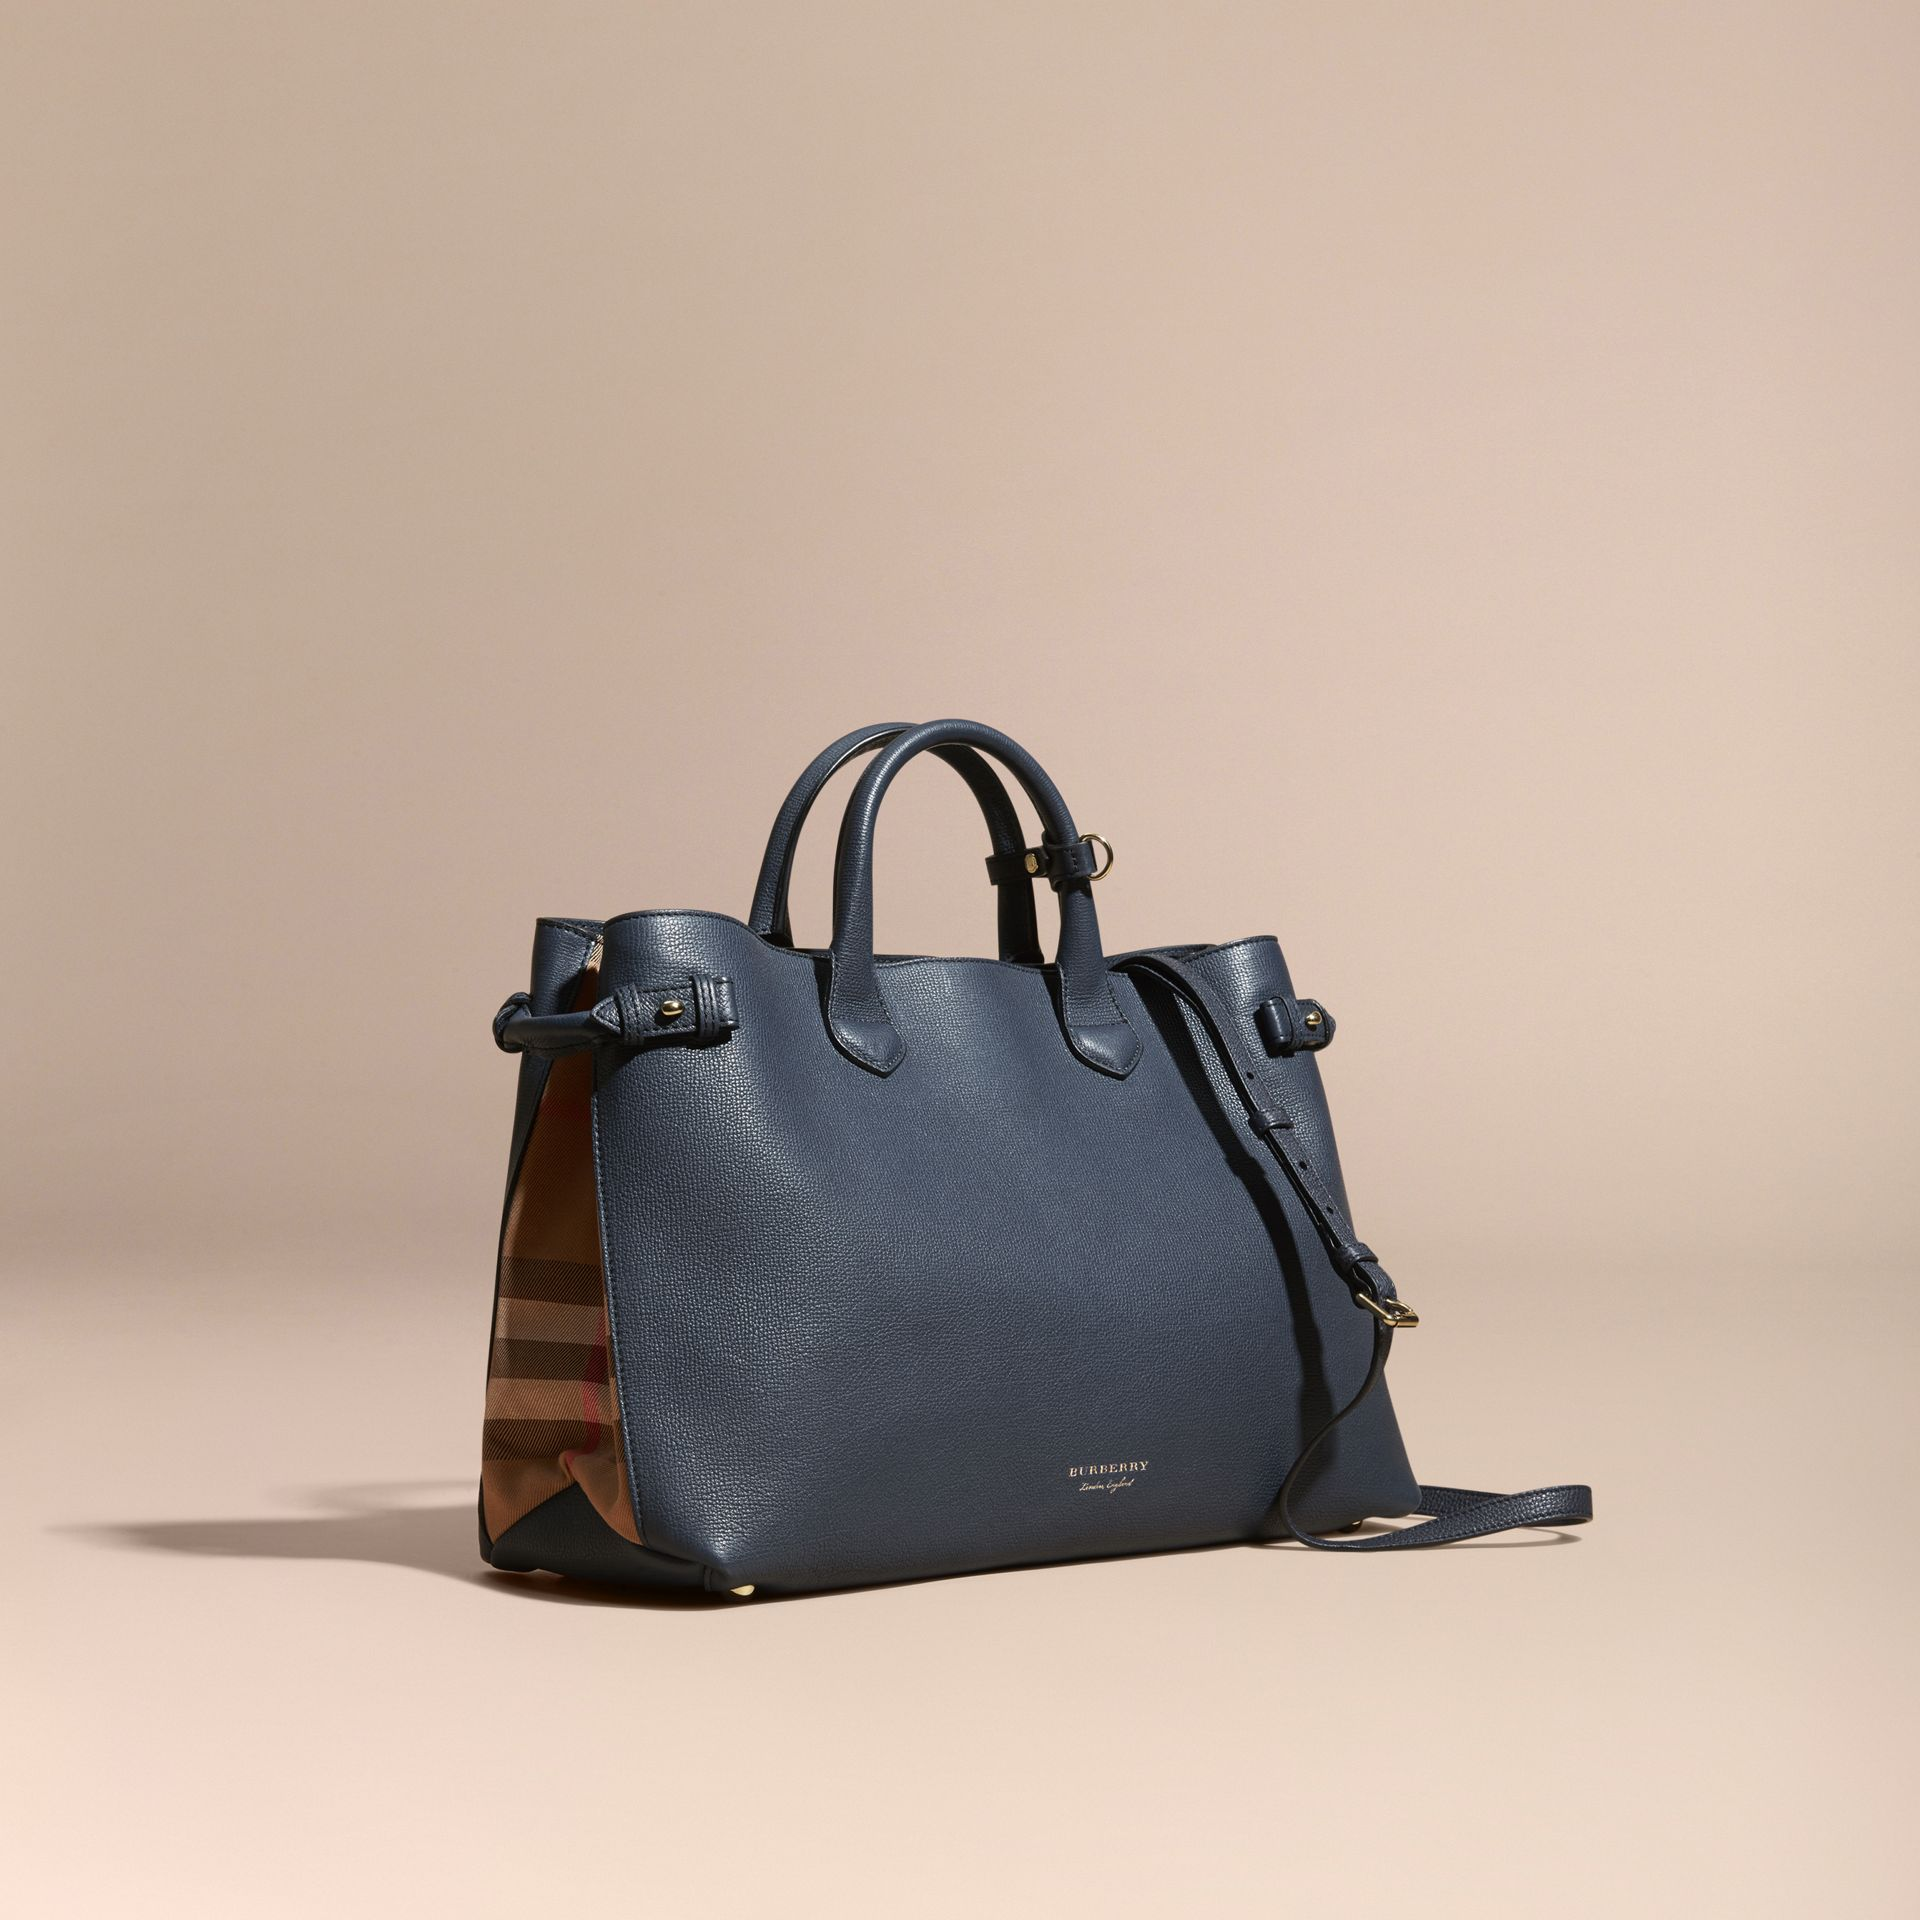 Bleu encre Grand sac The Banner en cuir et coton House check Bleu Encre - photo de la galerie 1